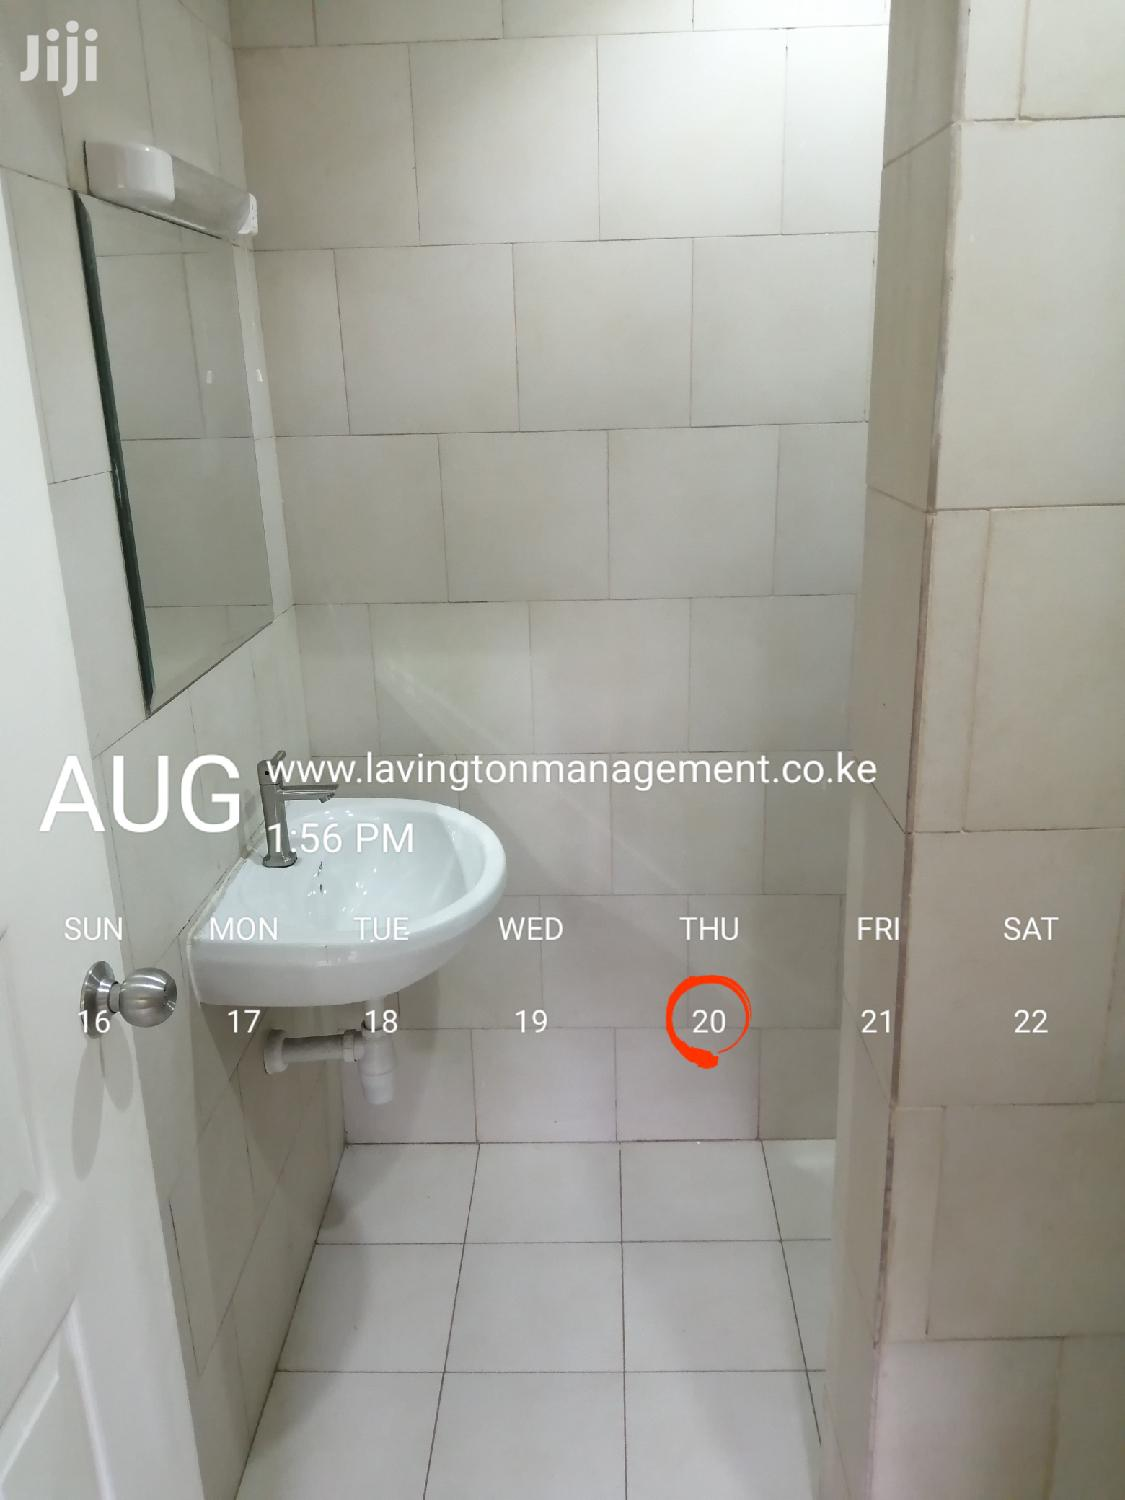 One Bedroom Extension House On Gitanga Rd Lavington | Houses & Apartments For Rent for sale in Lavington, Nairobi, Kenya